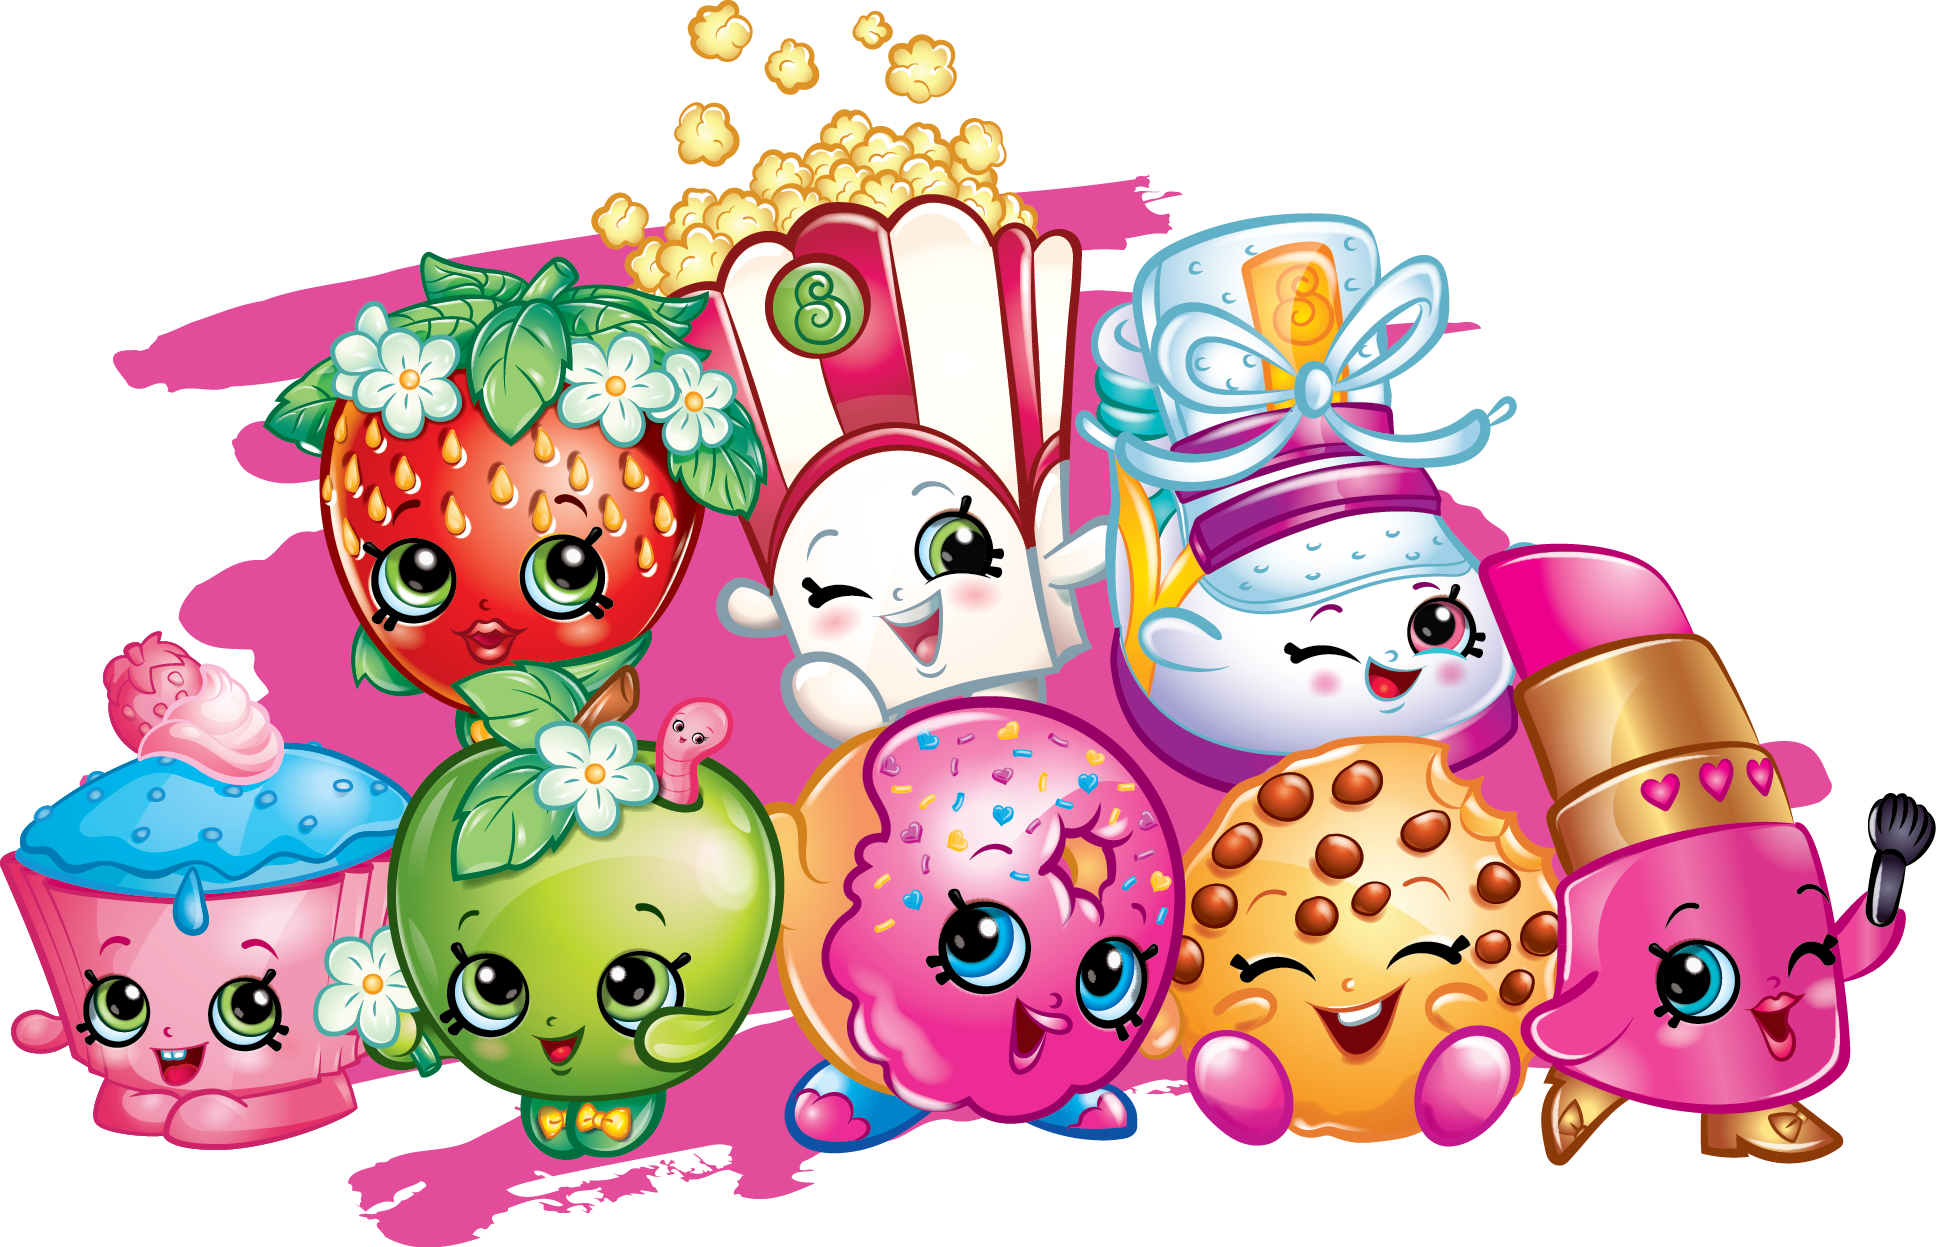 Birthday shopkins clipart transparent background clipart royalty free library 17 Best images about Shopkins party on Pinterest | Birthdays ... clipart royalty free library